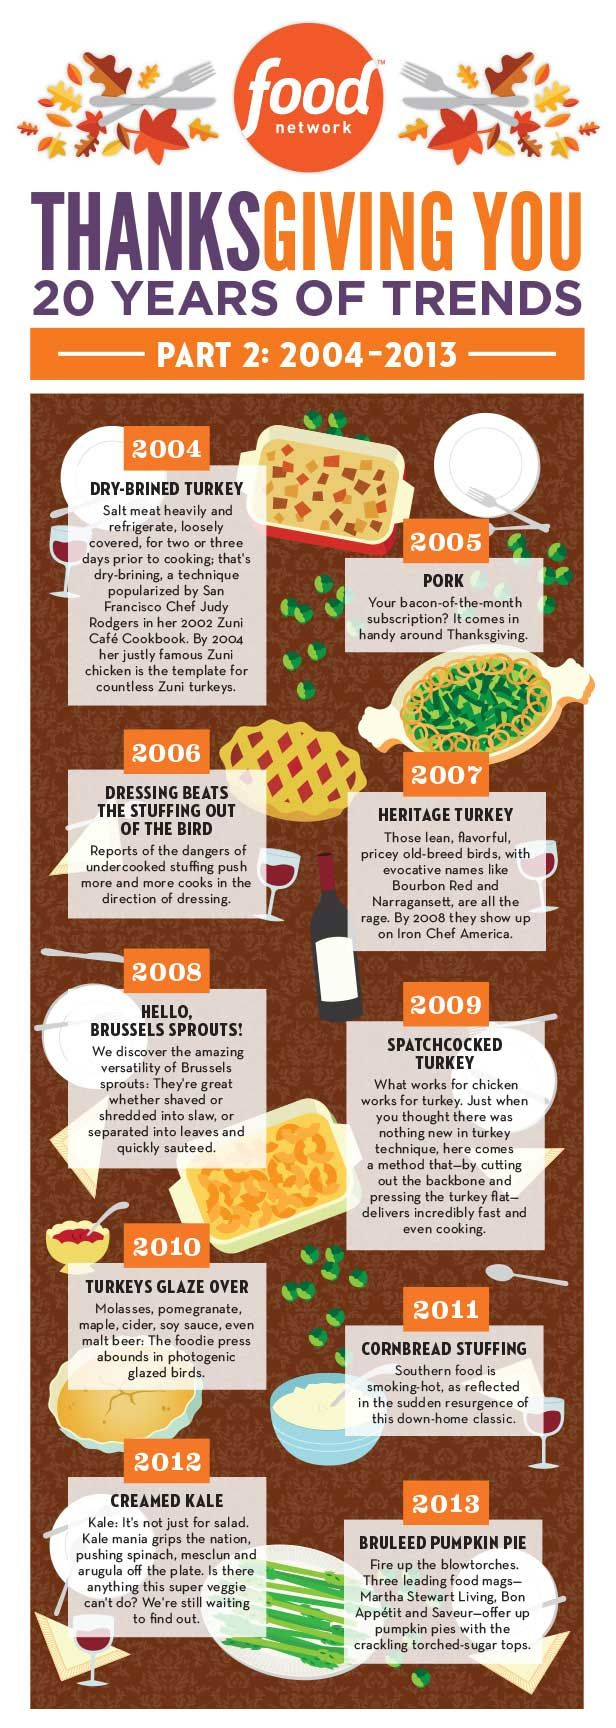 20 years of Thanksgiving trends in an infographic, Part 2.  |  Food Network